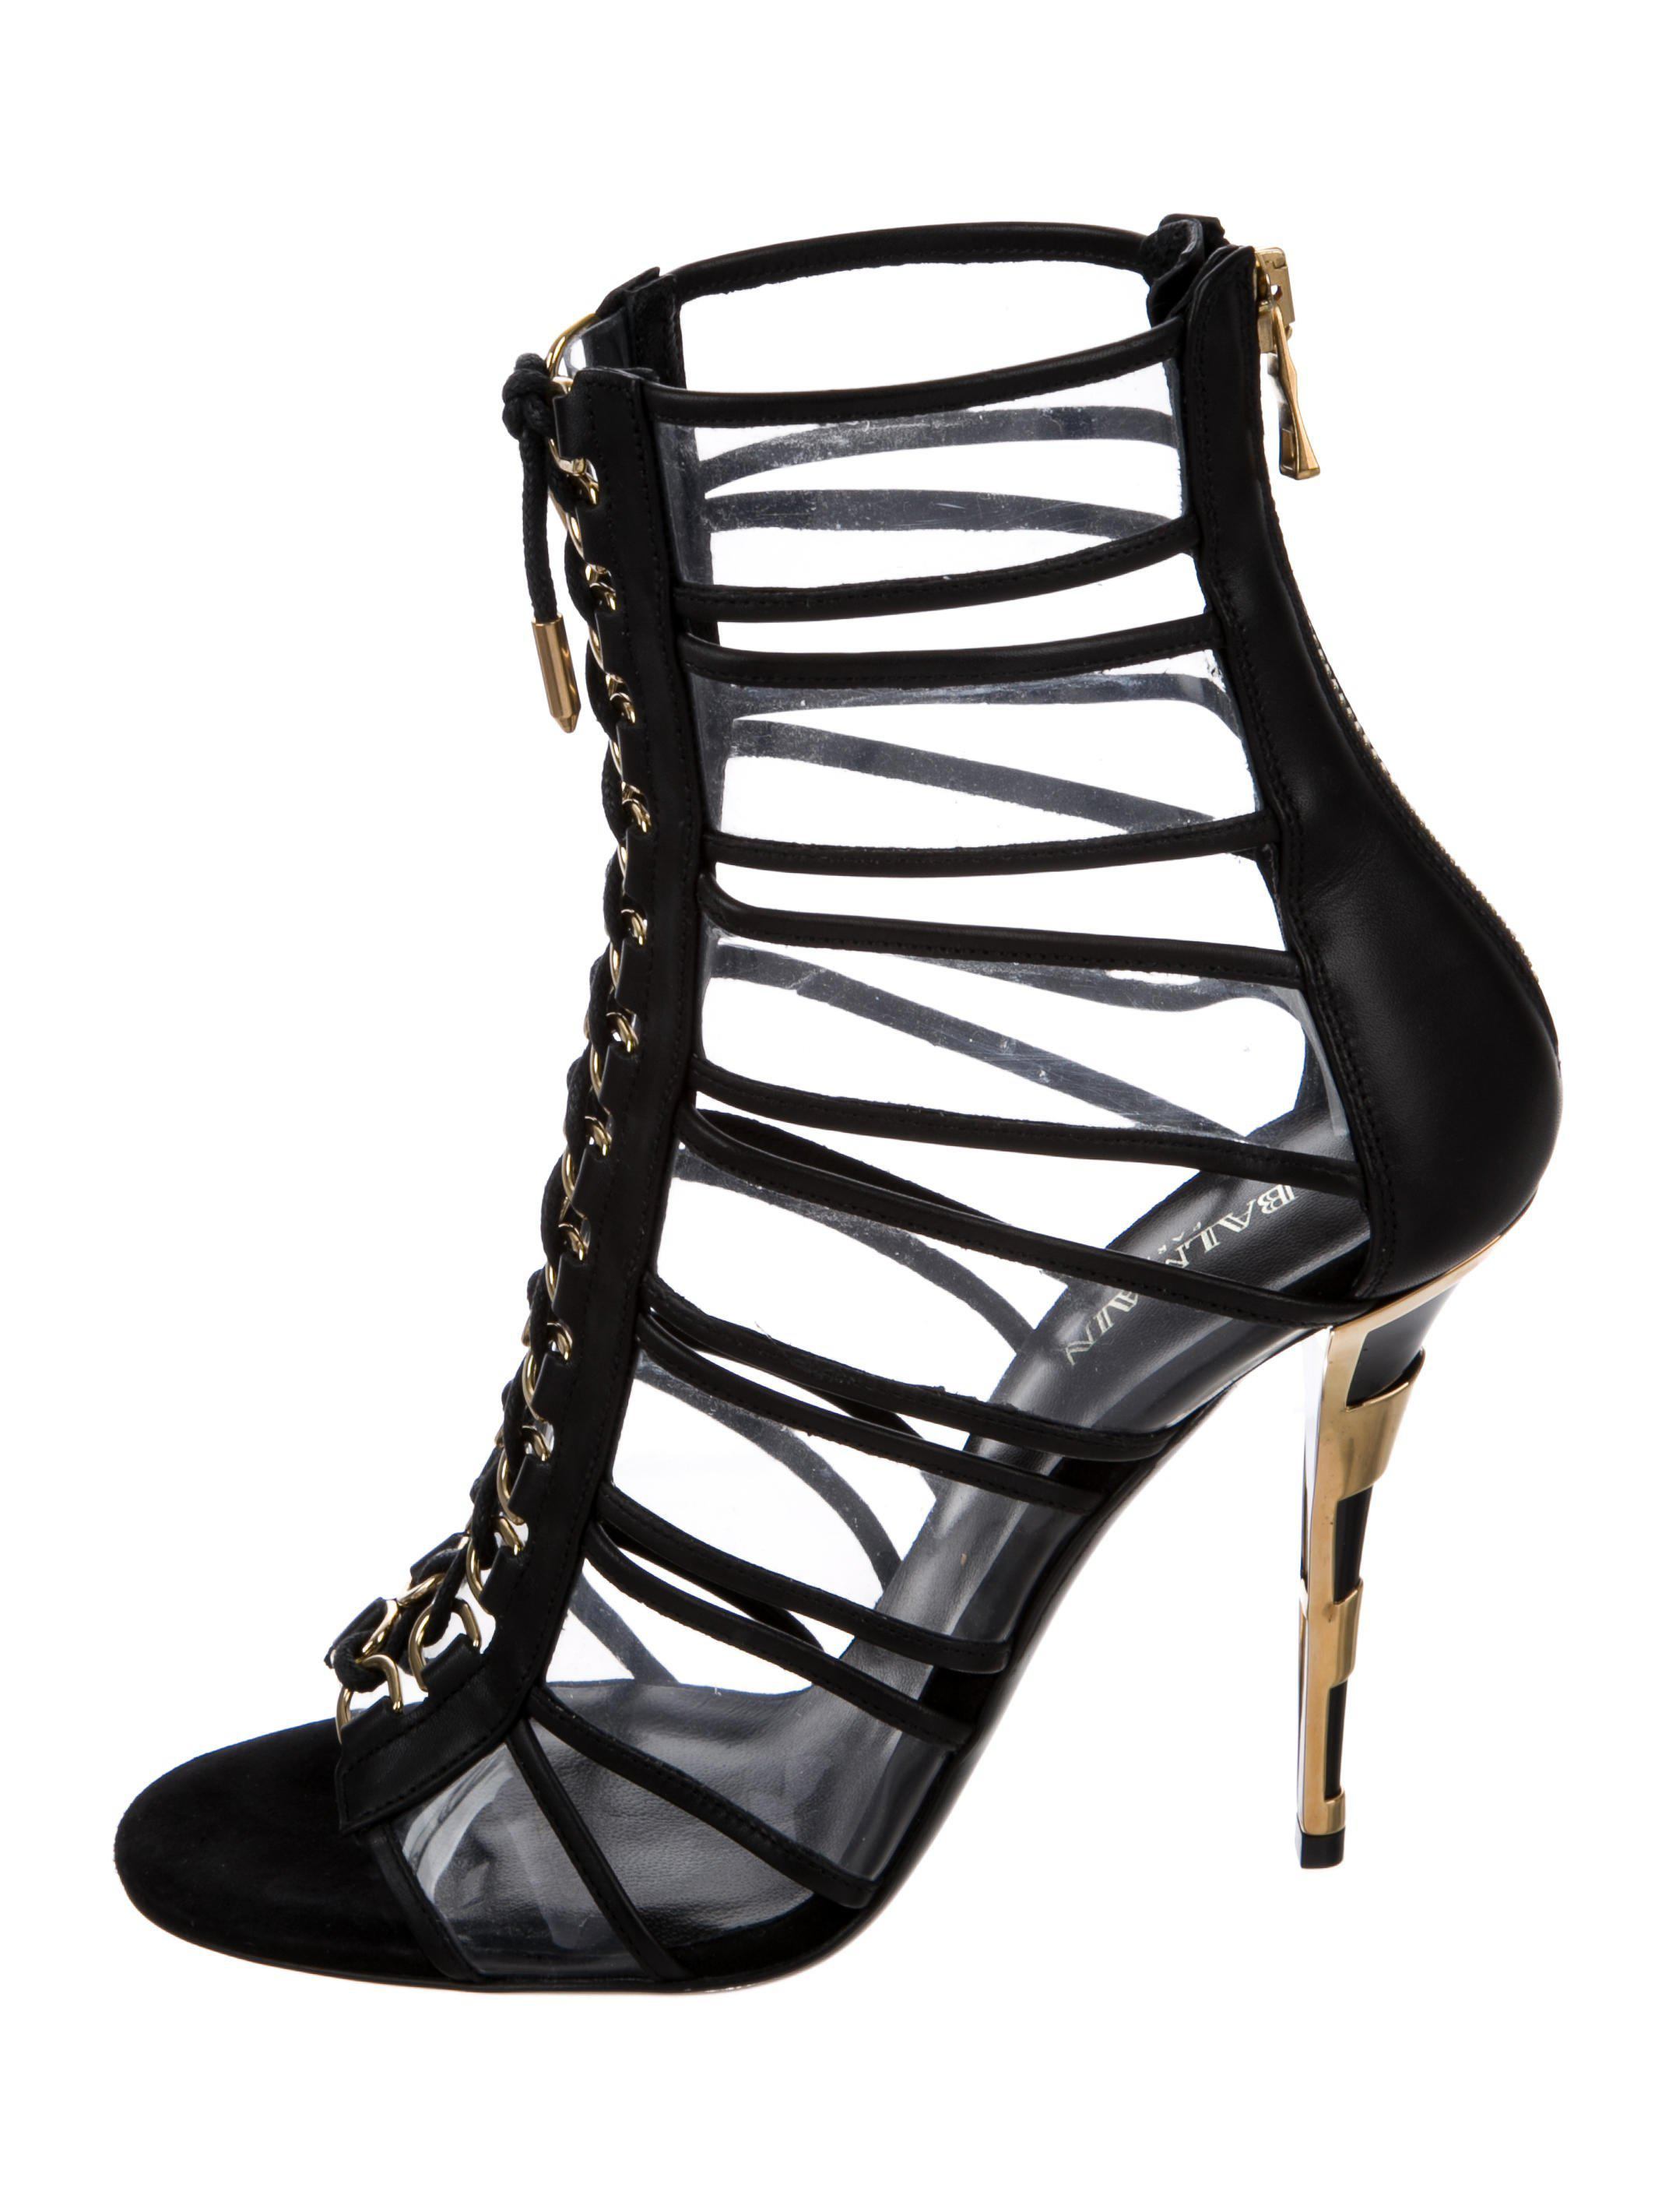 Balmain PVC Leather-Trimmed Sandals w/ Tags cheap prices cheap free shipping cheap fashion Style cheap sale free shipping D7345